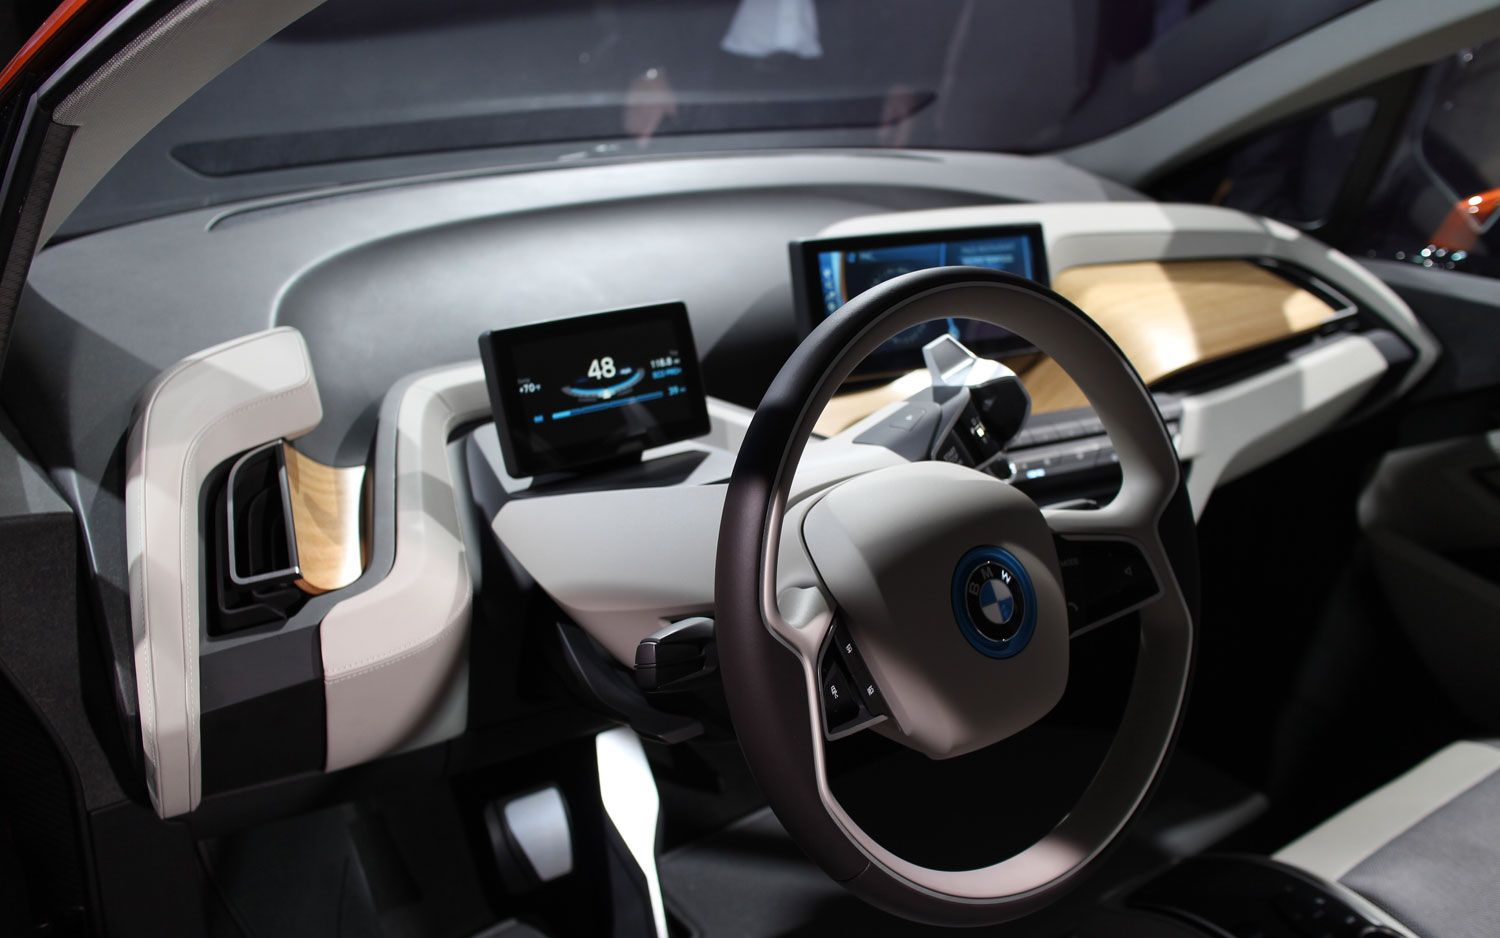 bmw i3 interior 6 car interior pinterest bmw i3. Black Bedroom Furniture Sets. Home Design Ideas